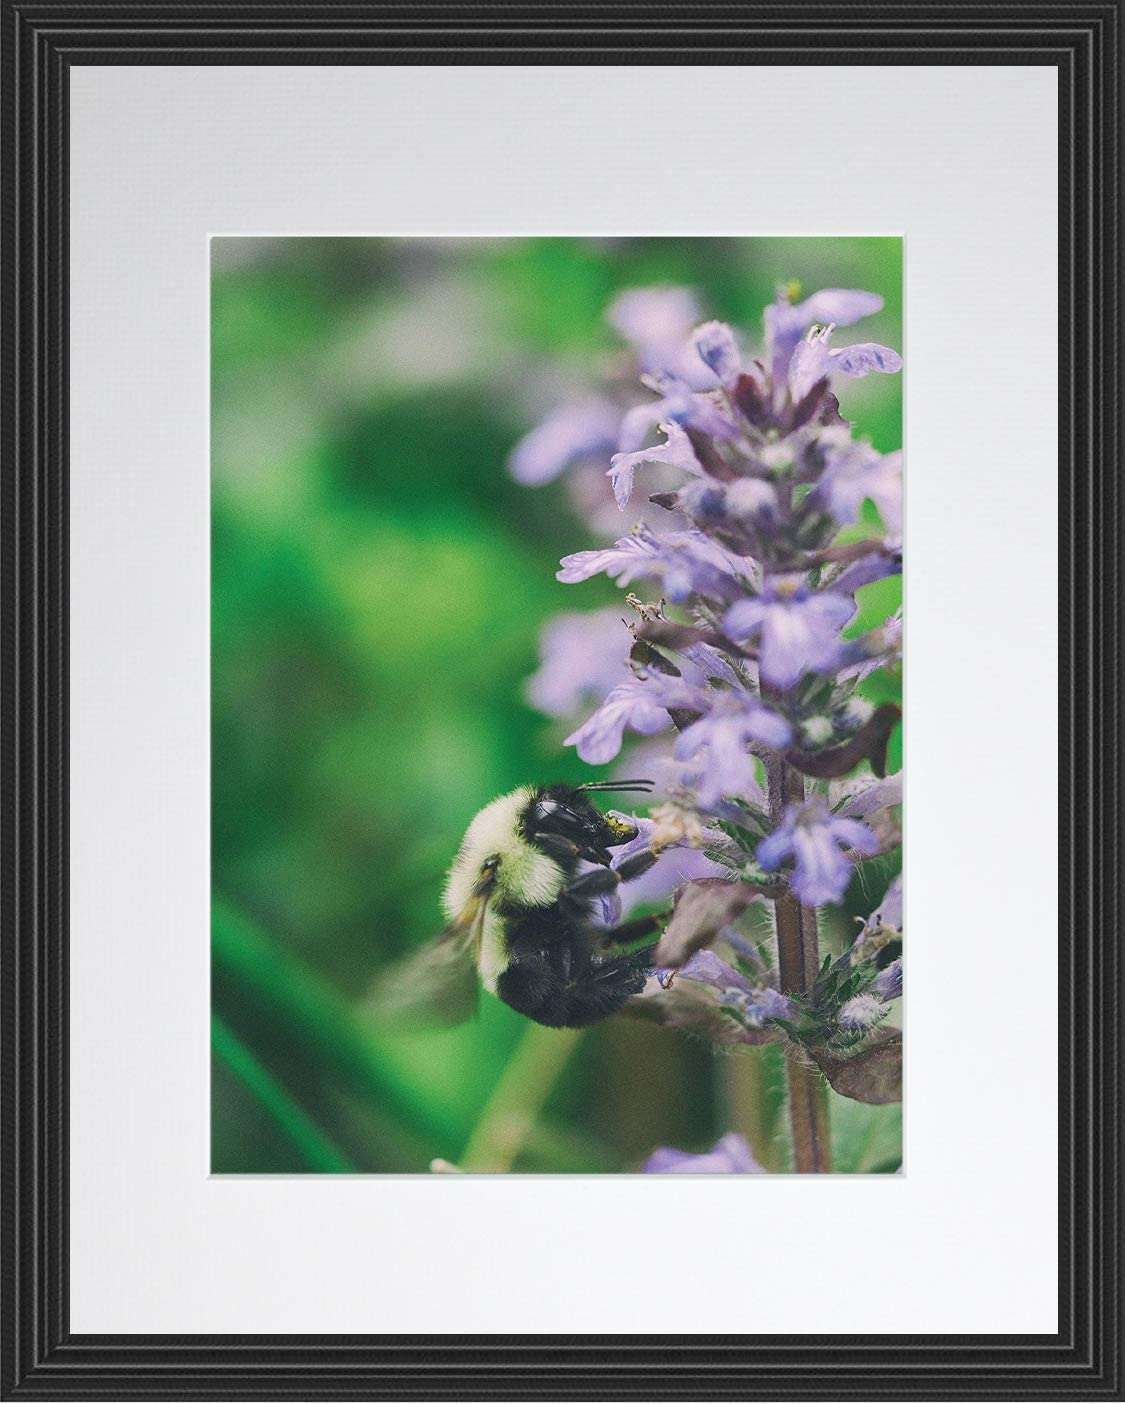 The Lavender Flower and The Bee Beautiful Scenery Poster Framed Photo Picture Print Home Room Decor Garden Nature Wall Art - Flowers Floral Collection (11x14 Framed)